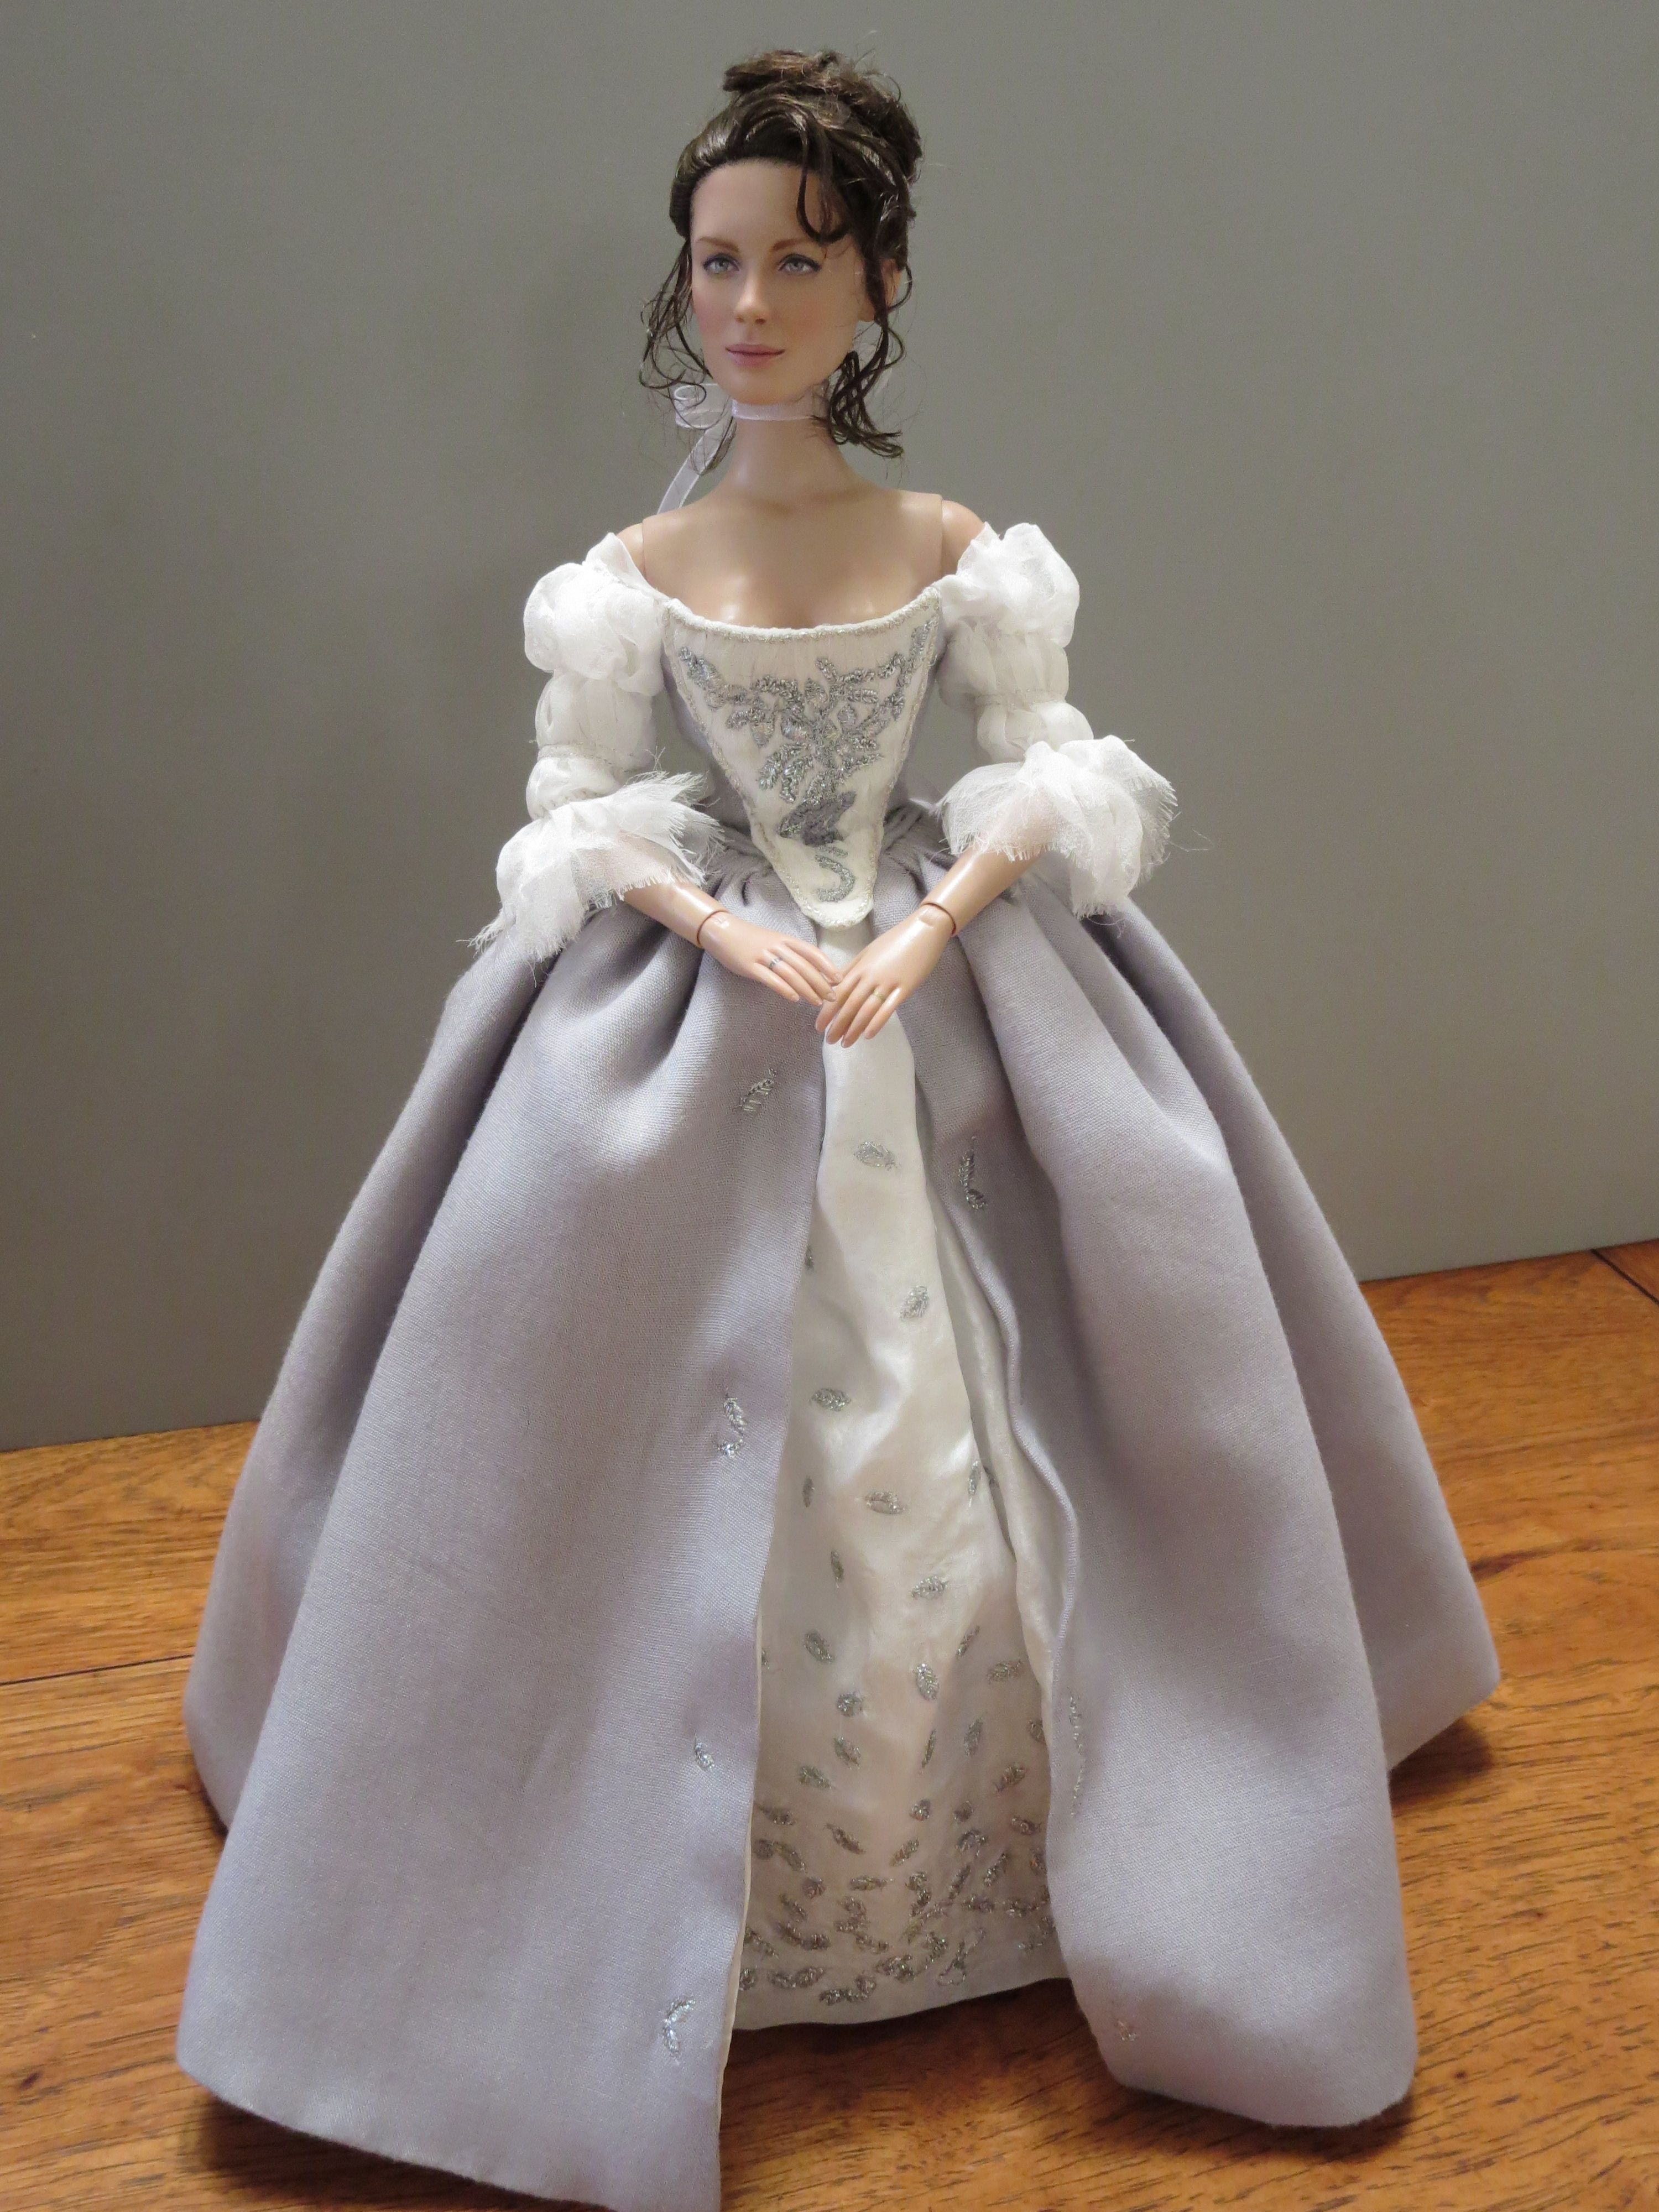 Claire Fraser In Her Wedding Gown Made By Becky Unger Beautifully Detailed Taking Over 50hrs To Hand Embroider